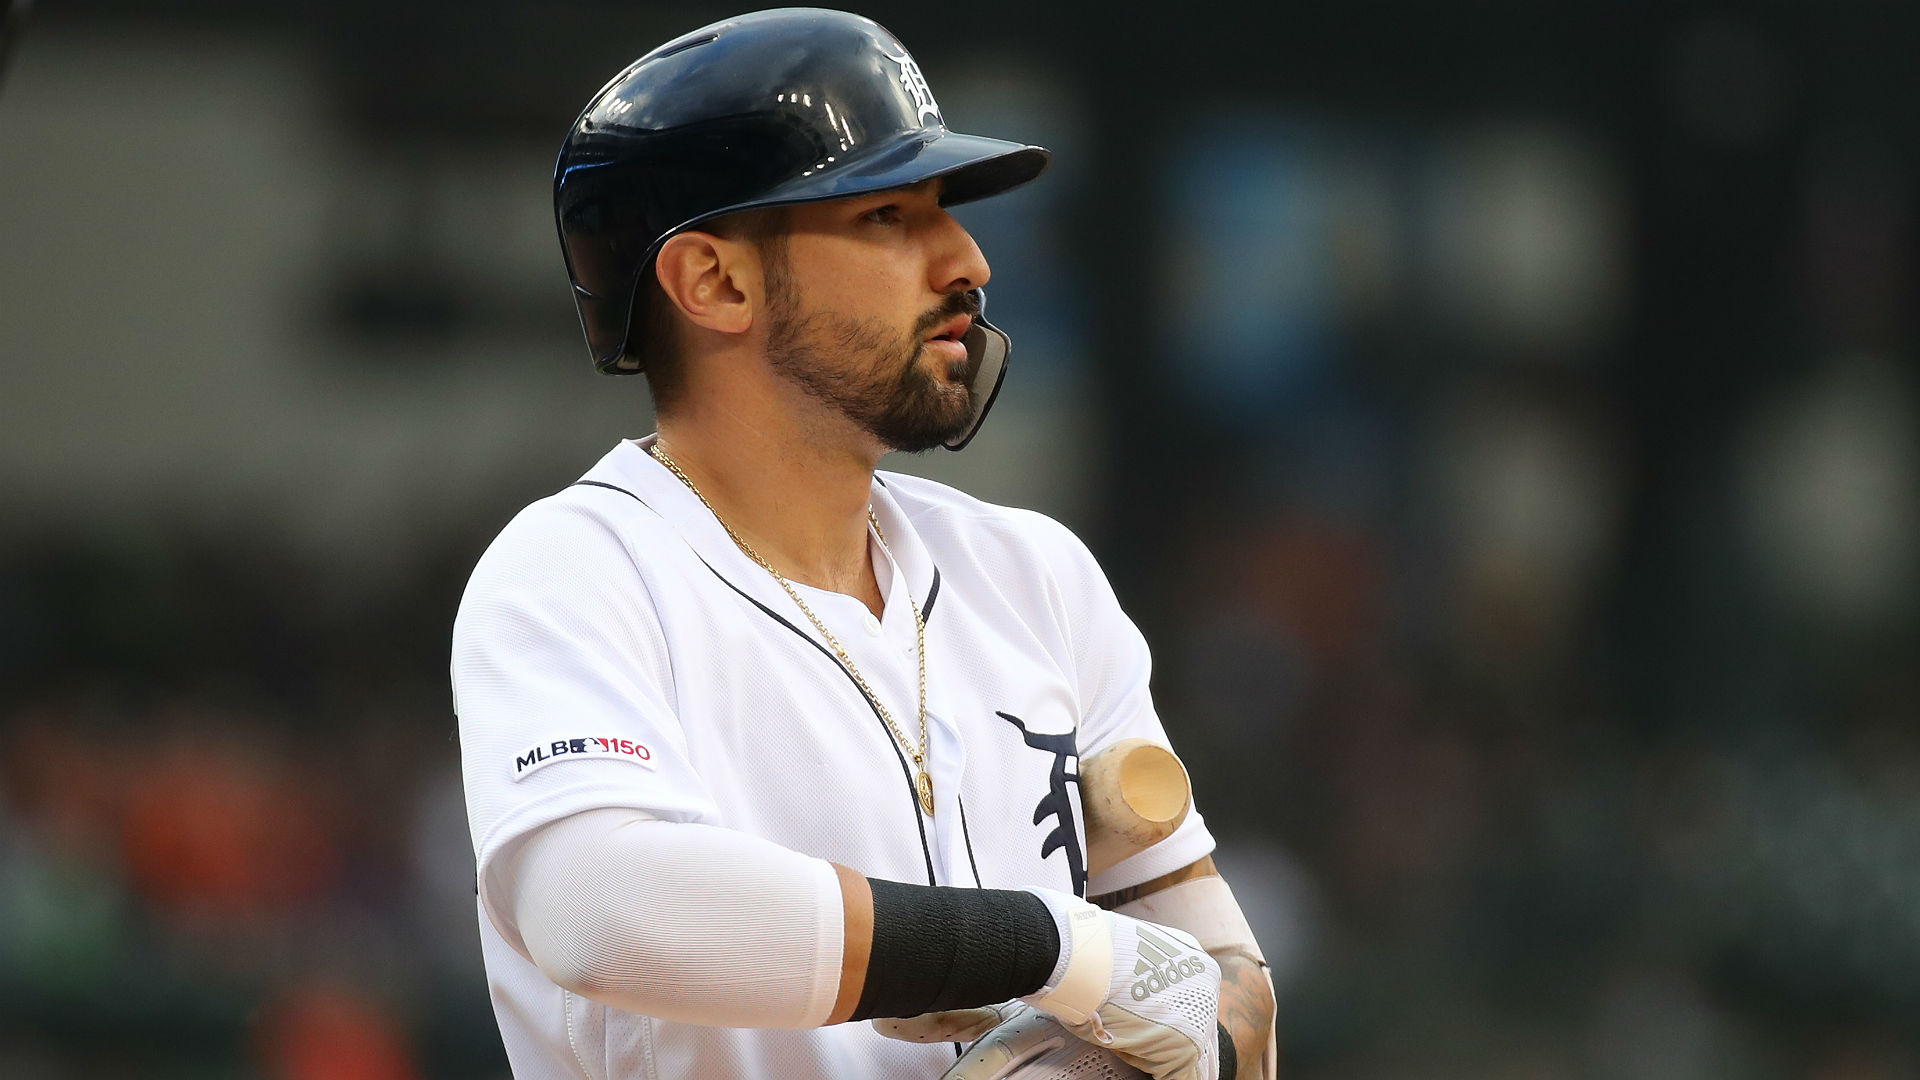 Castellanos is slashing .280/.339/.467 with 10 home runs and 35 RBIs in 92 games this season.